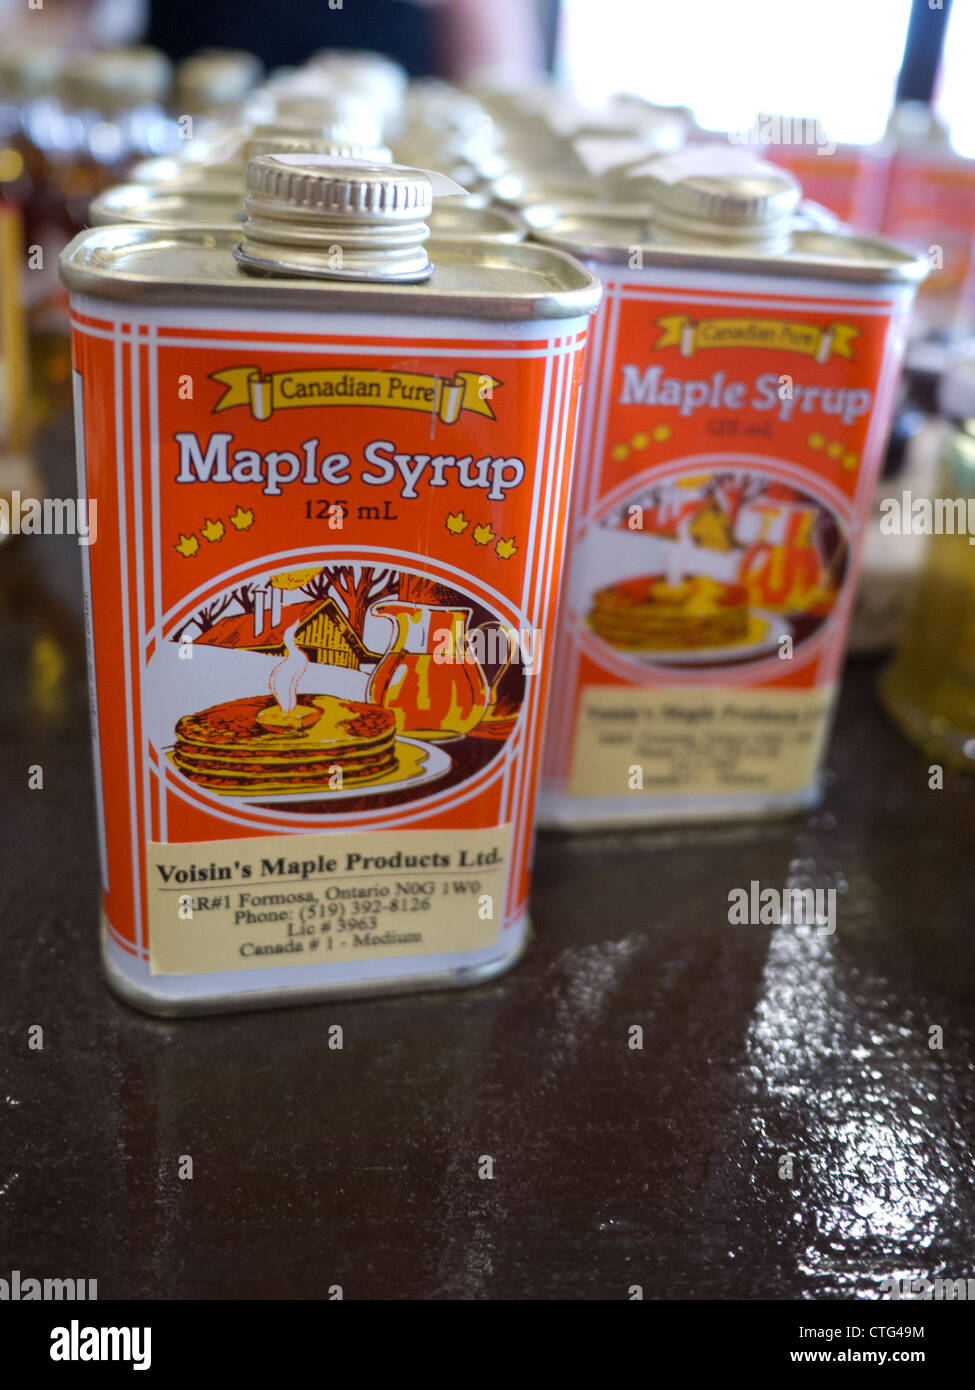 maple syrup can canned canada - Stock Image